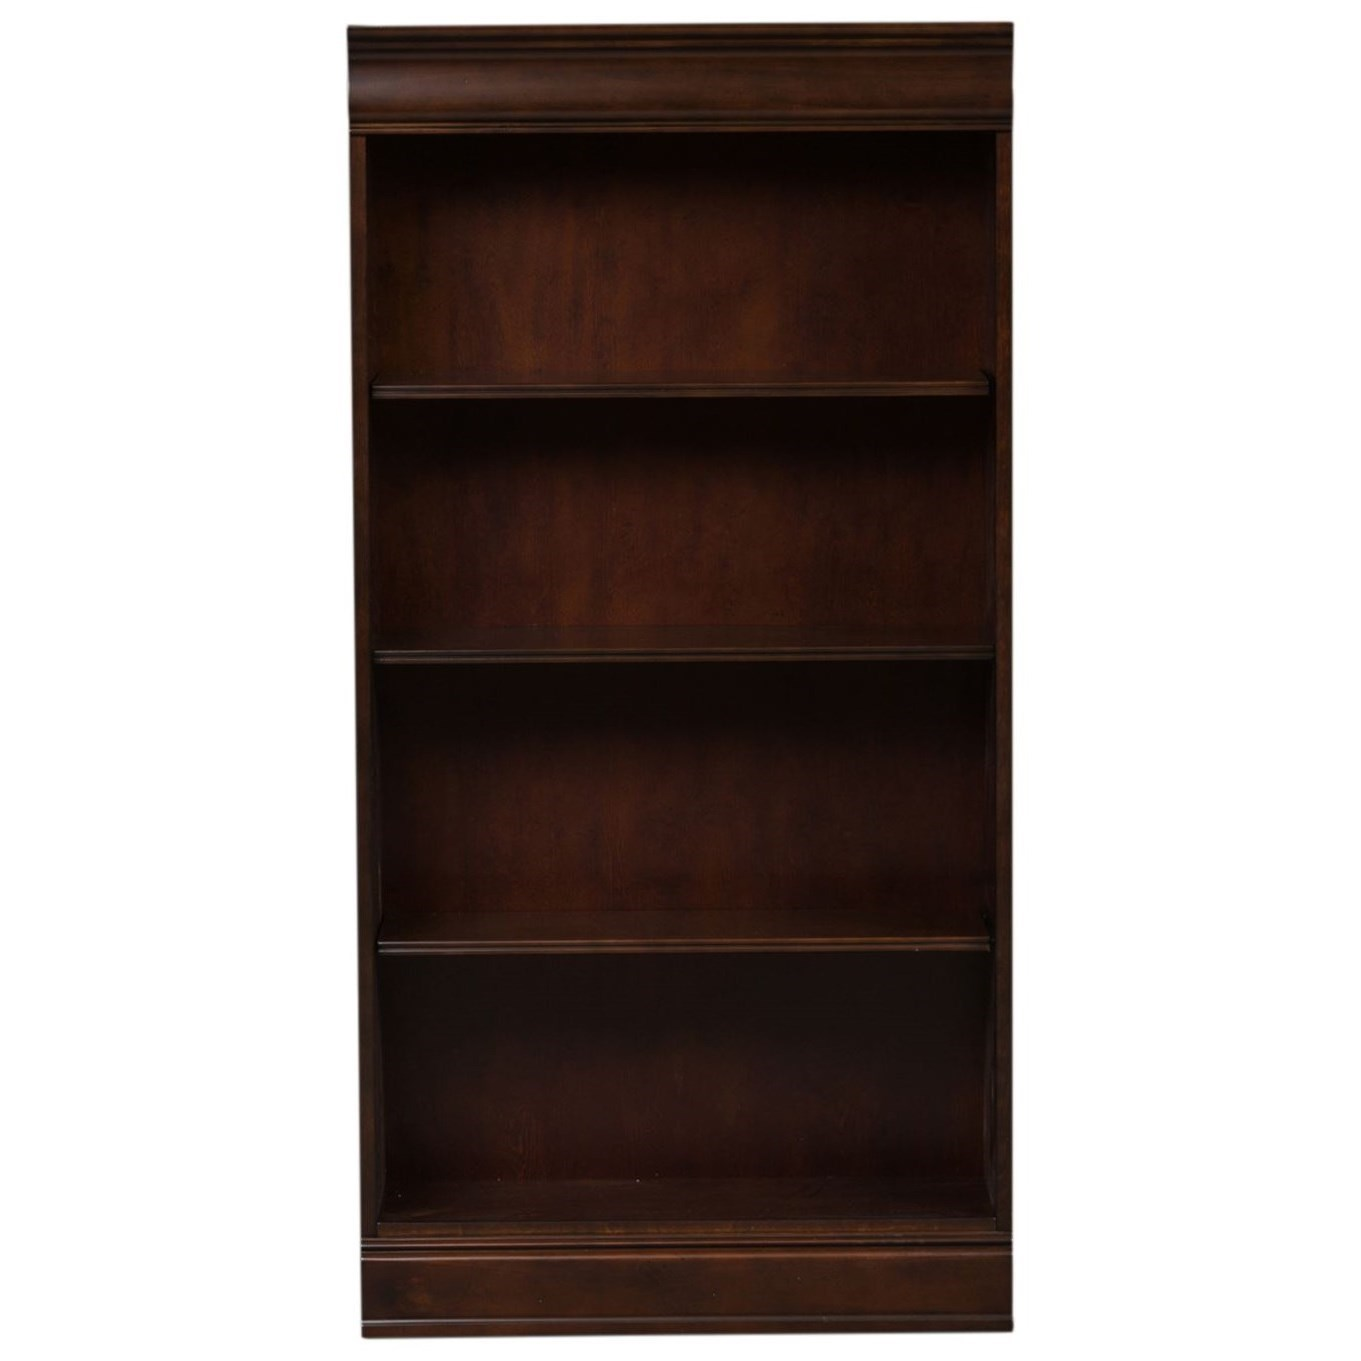 Brayton Manor Jr Executive 60 Inch Bookcase by Liberty Furniture at Zak's Home